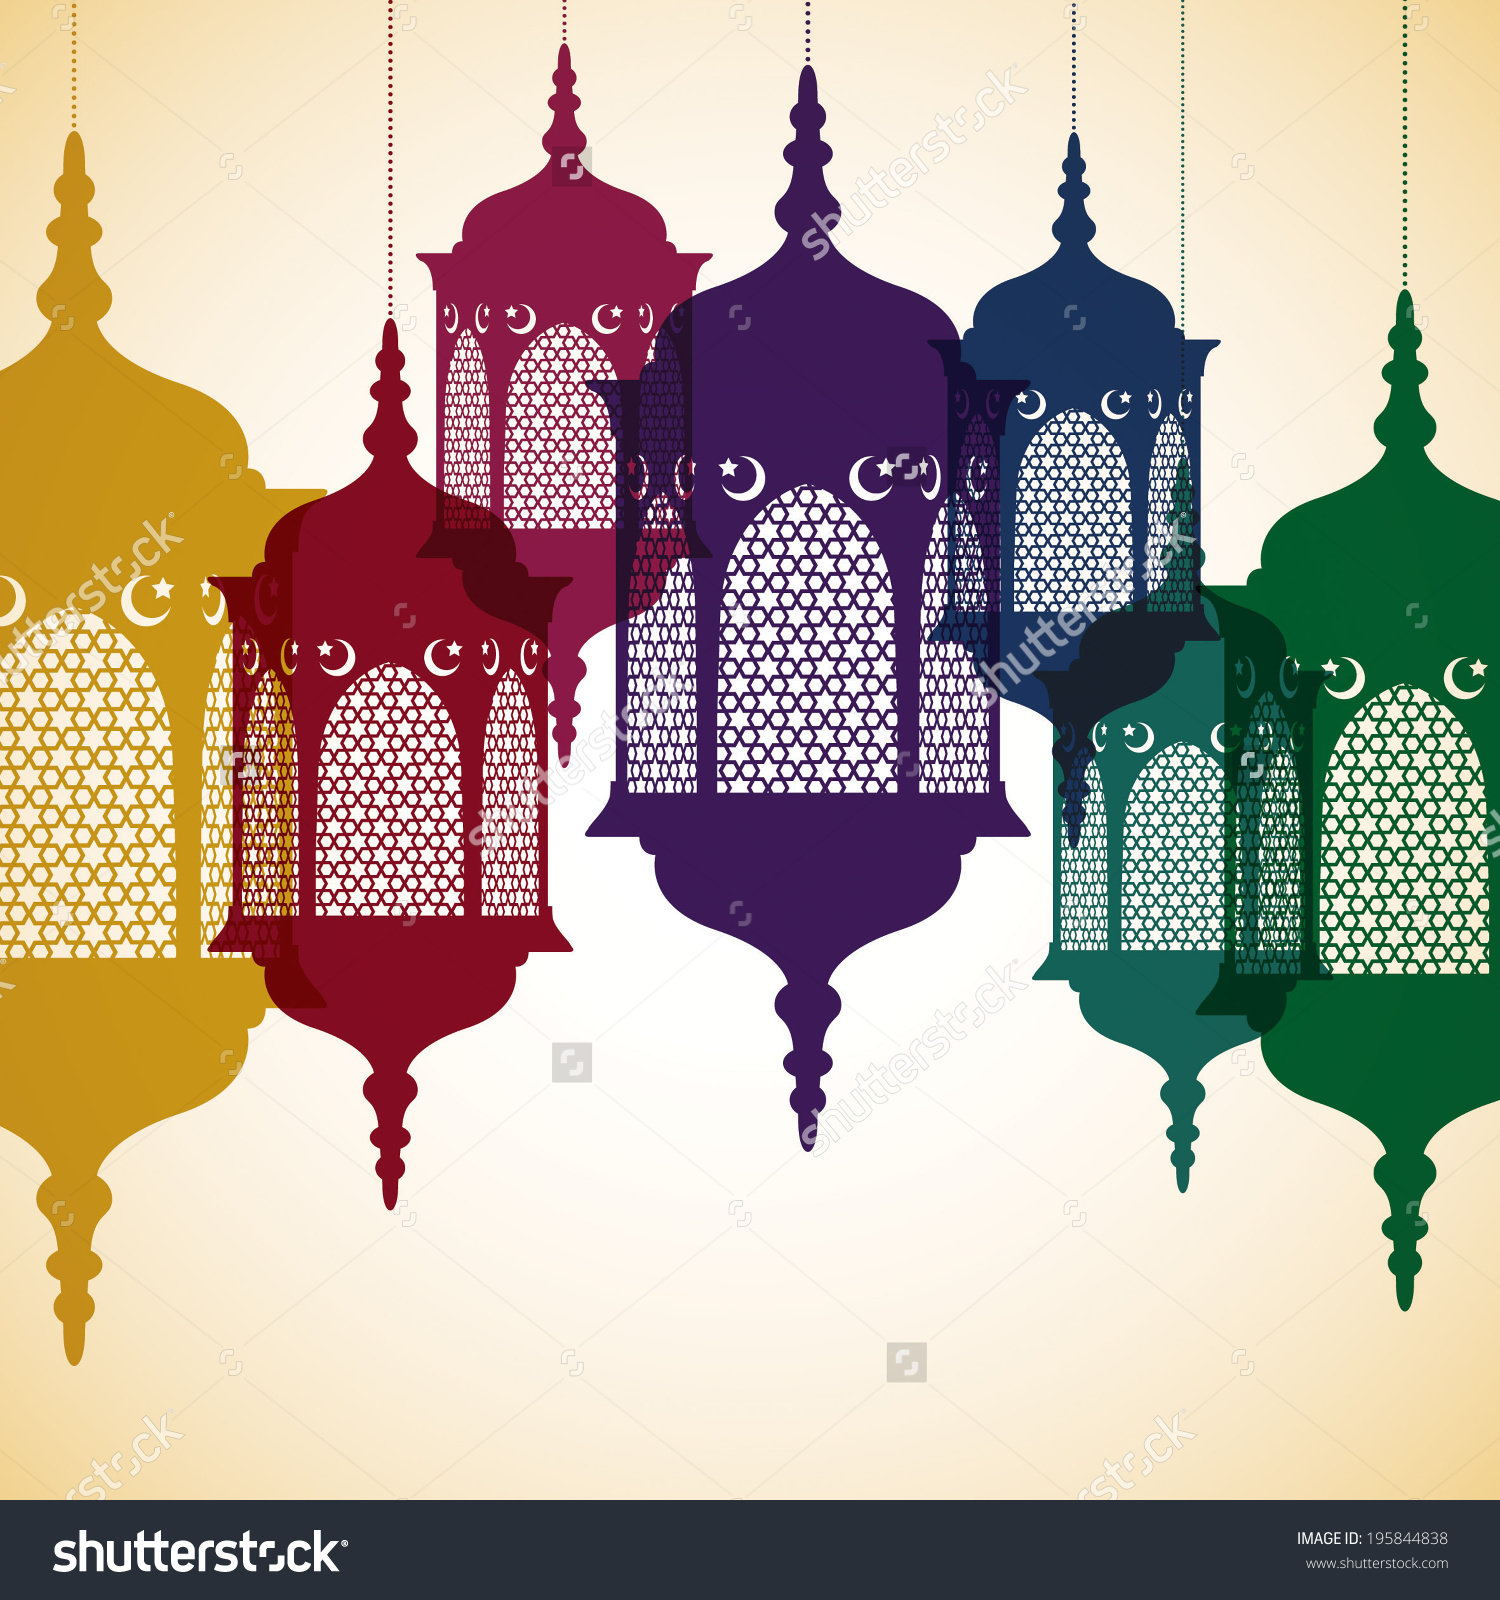 Paper Lantern clipart ramadan Images Decorative Up Light Up